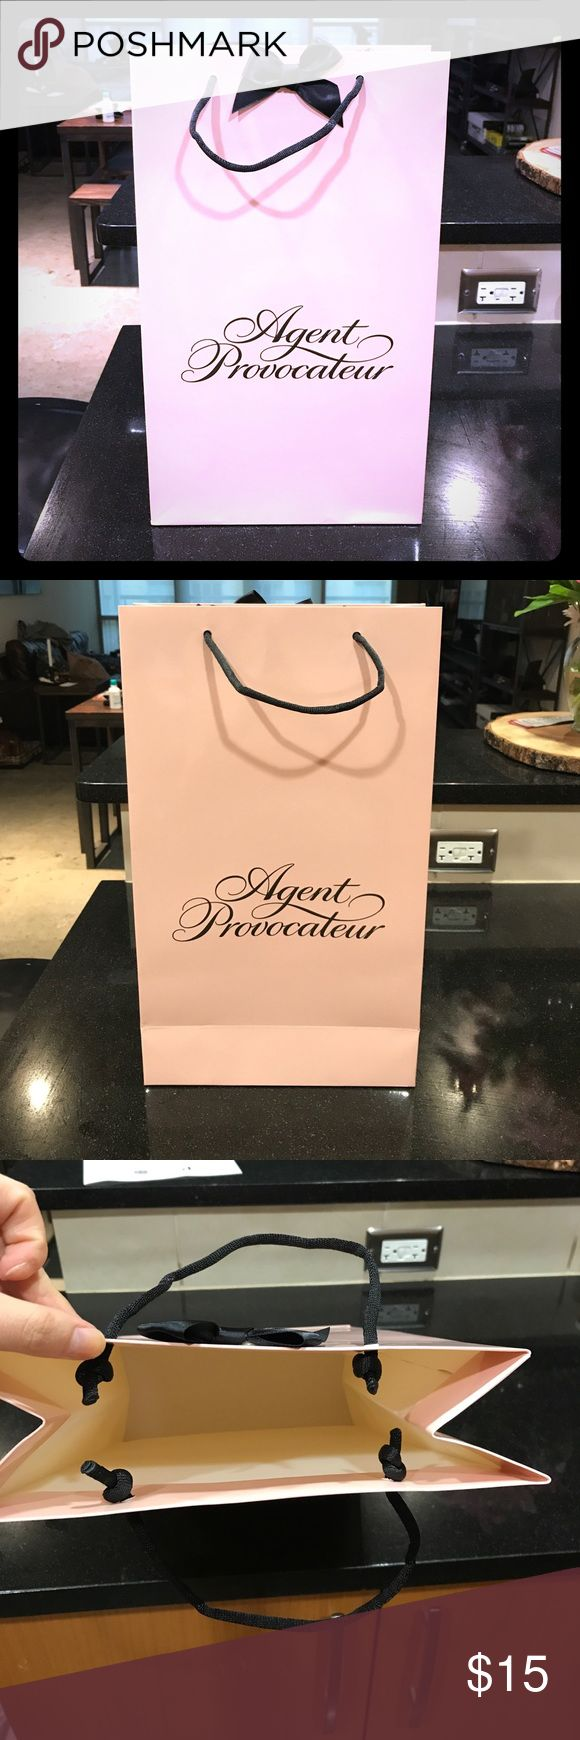 Agent Provocateur Bag Make your sales look more professional with this high quality Agent Provocateur bag. Mint condition. Agent Provocateur Bags